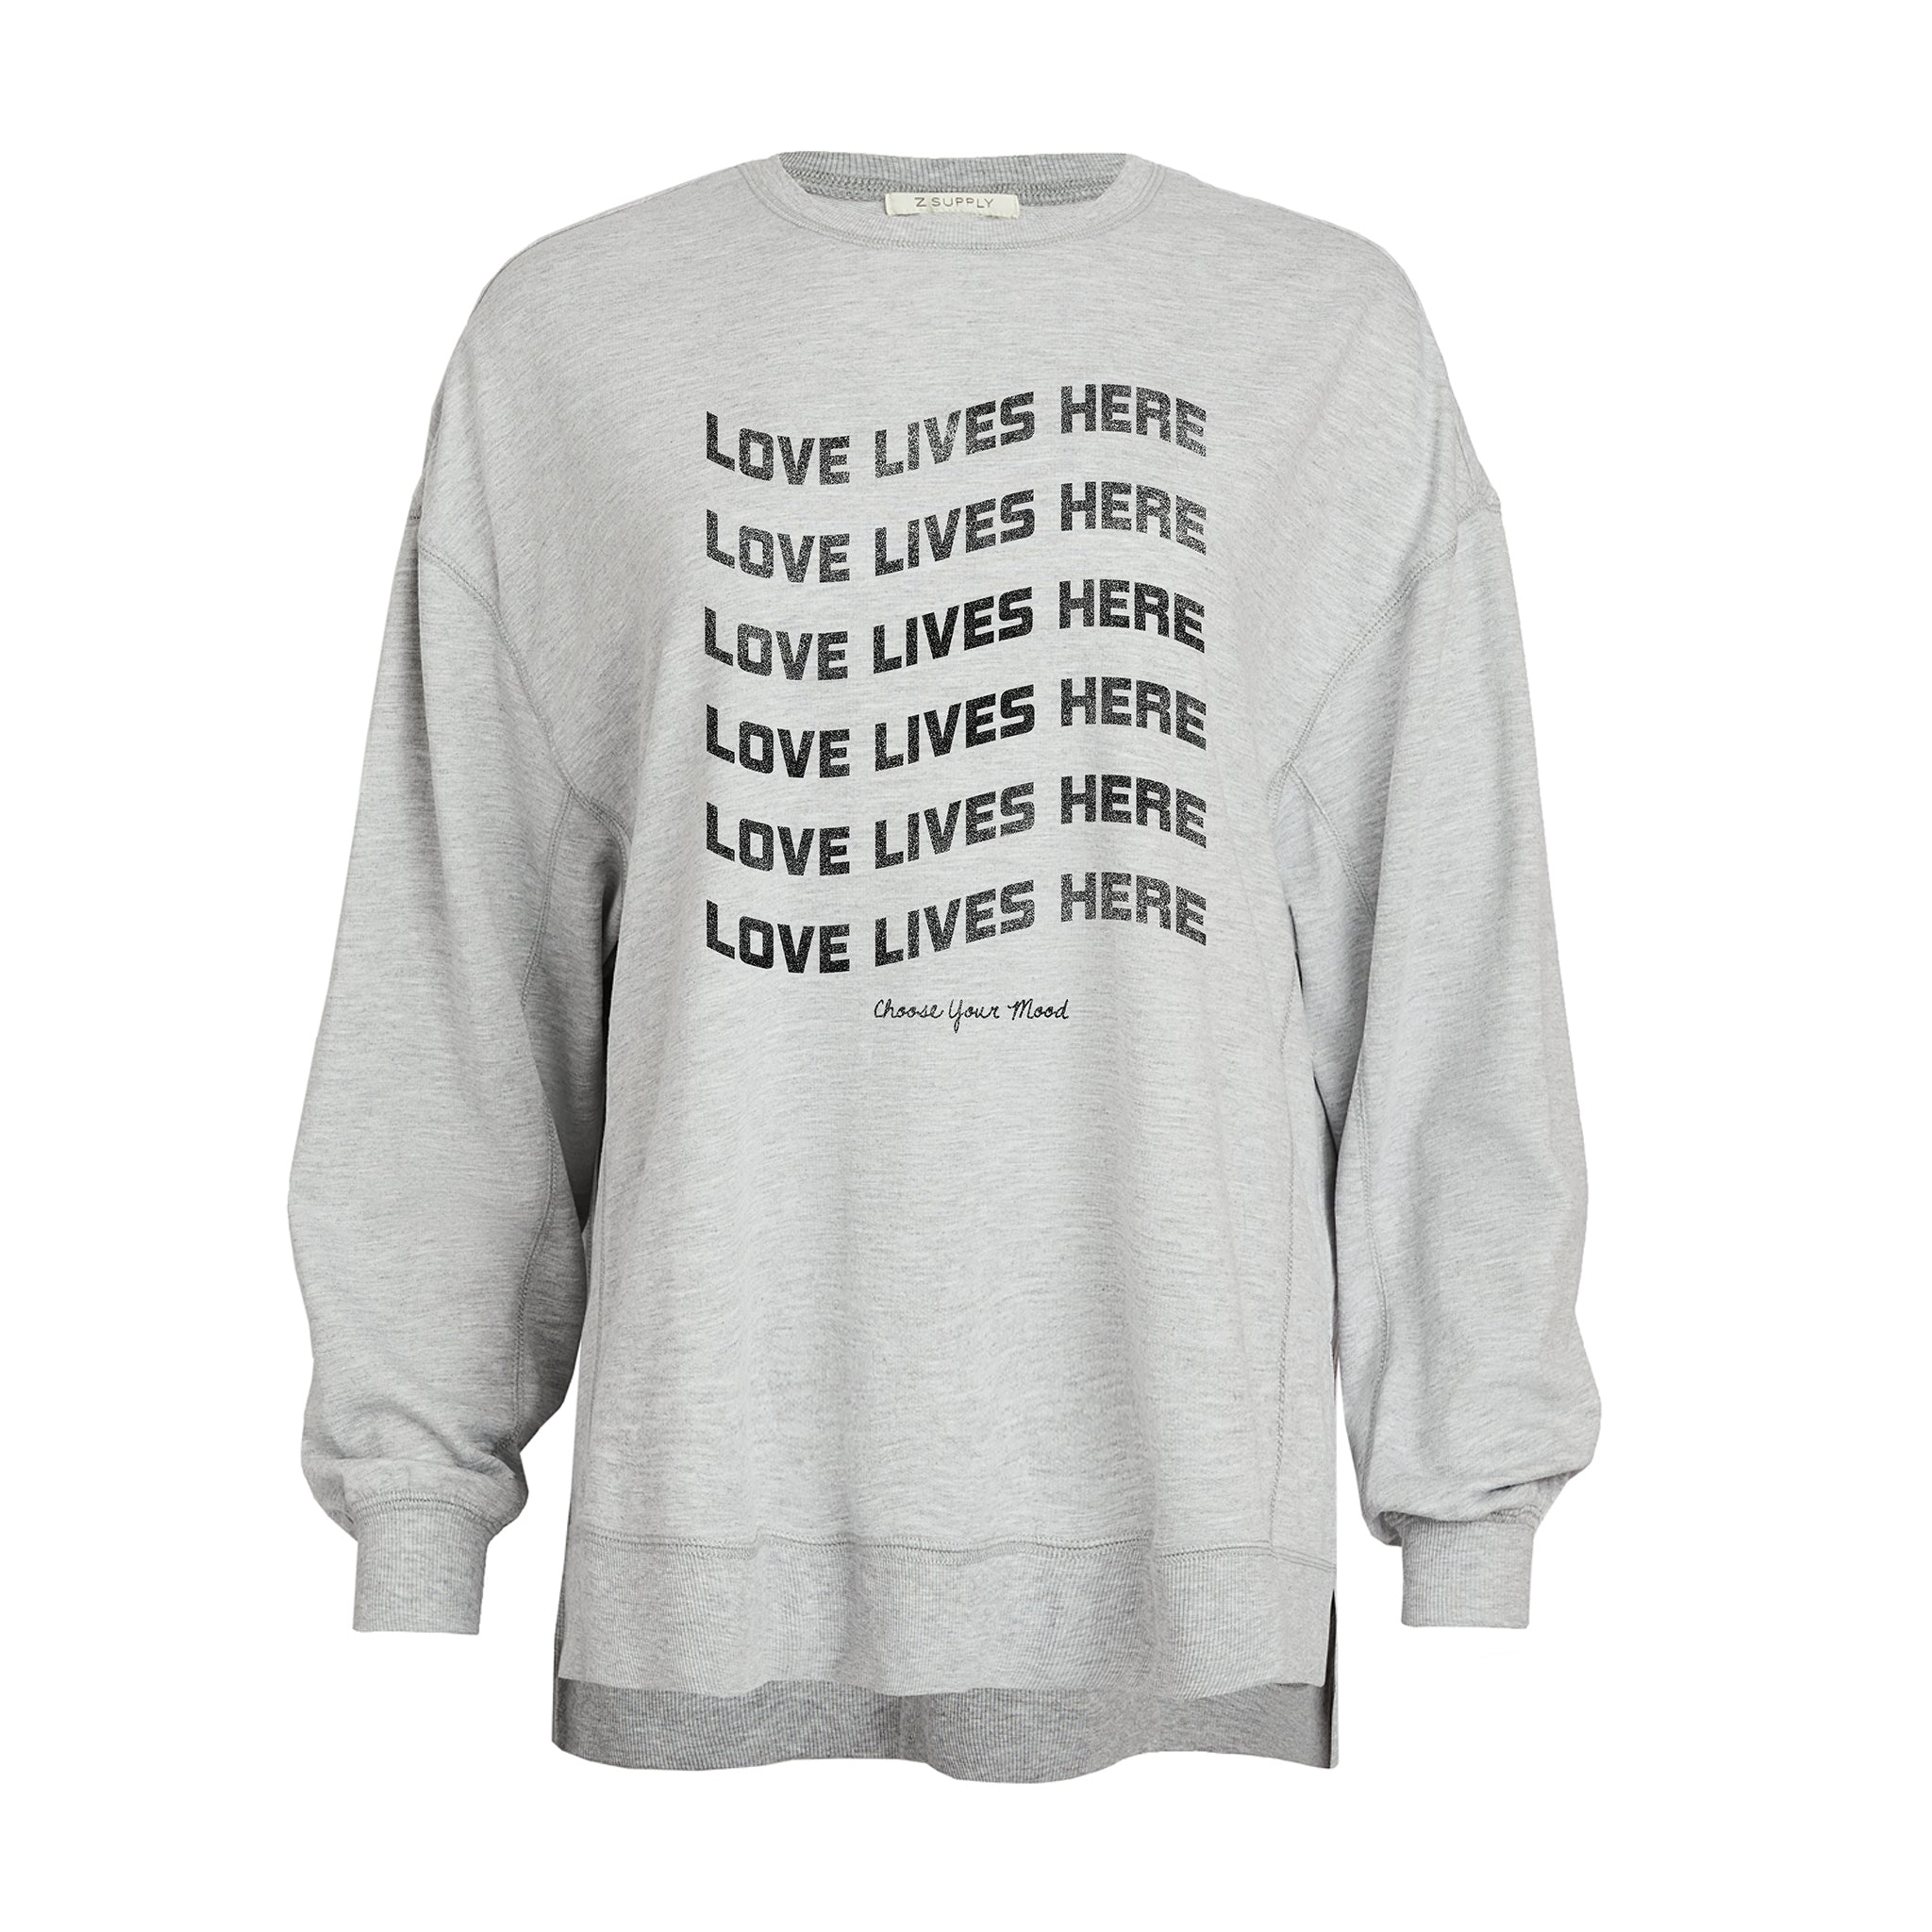 Love Lives Here in Heather Grey